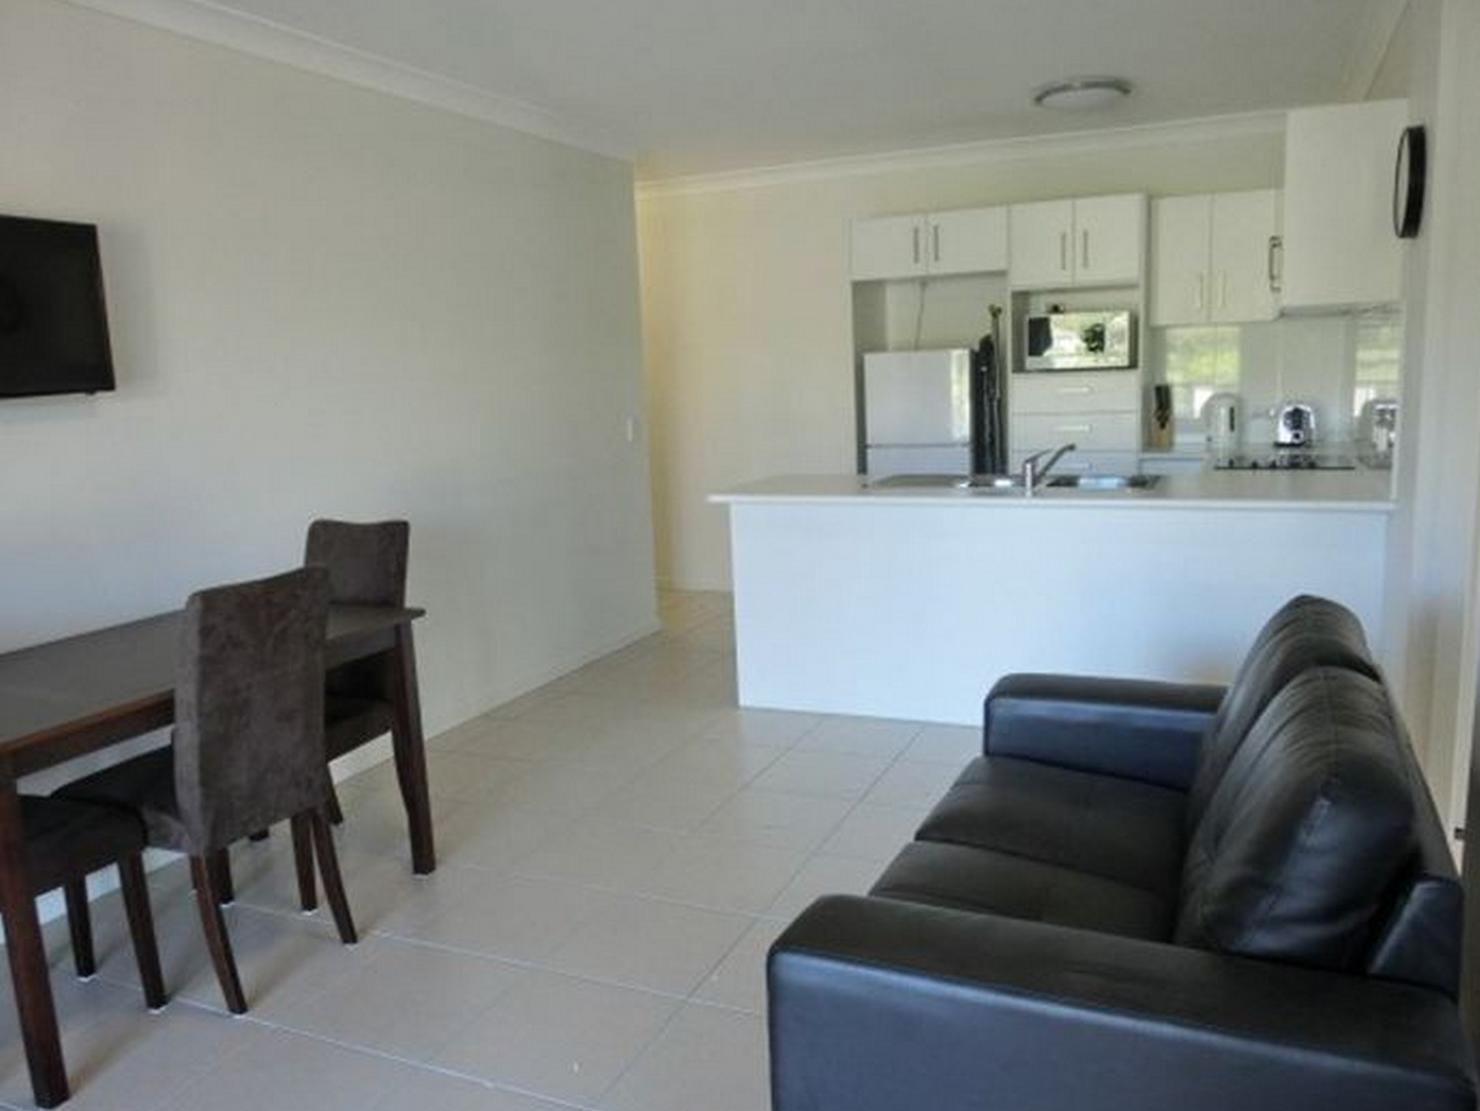 2 Bedroom Apartment Brisbane Book Brisbane Valley Tavern Apartments Fernvale 2019 Prices